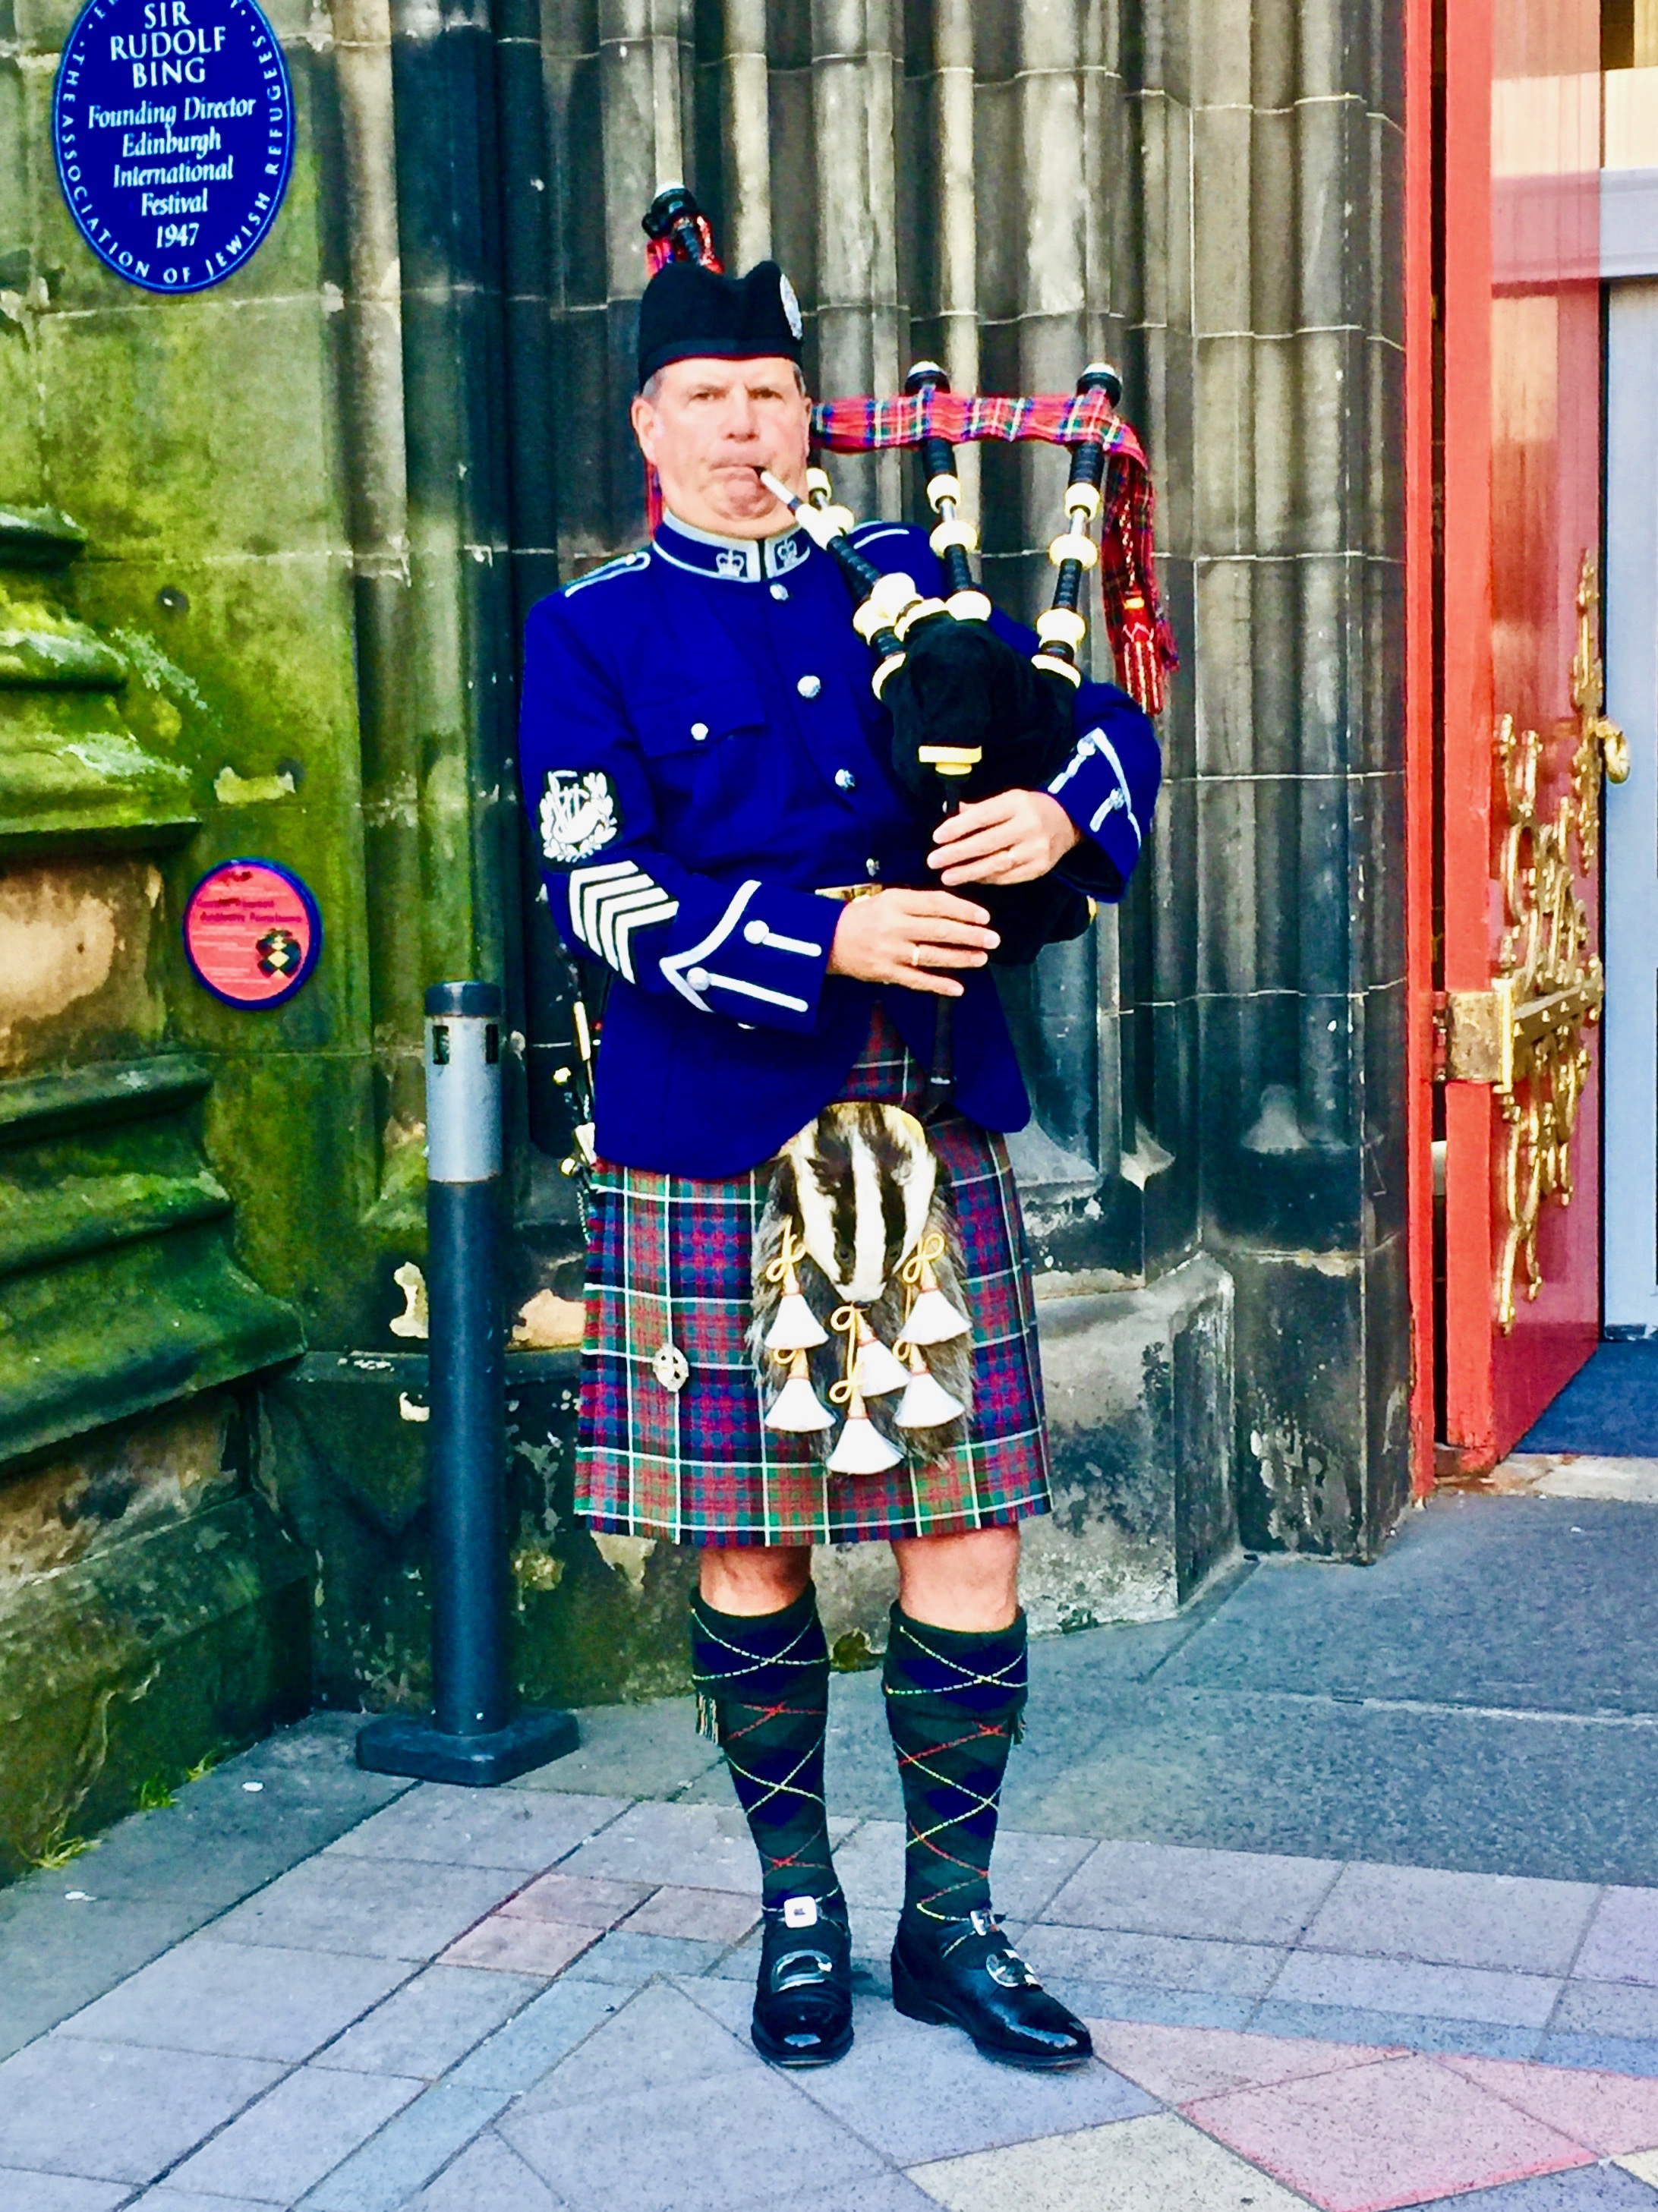 Welcome Piper, The Hub, Edinburgh Castle,May 2019